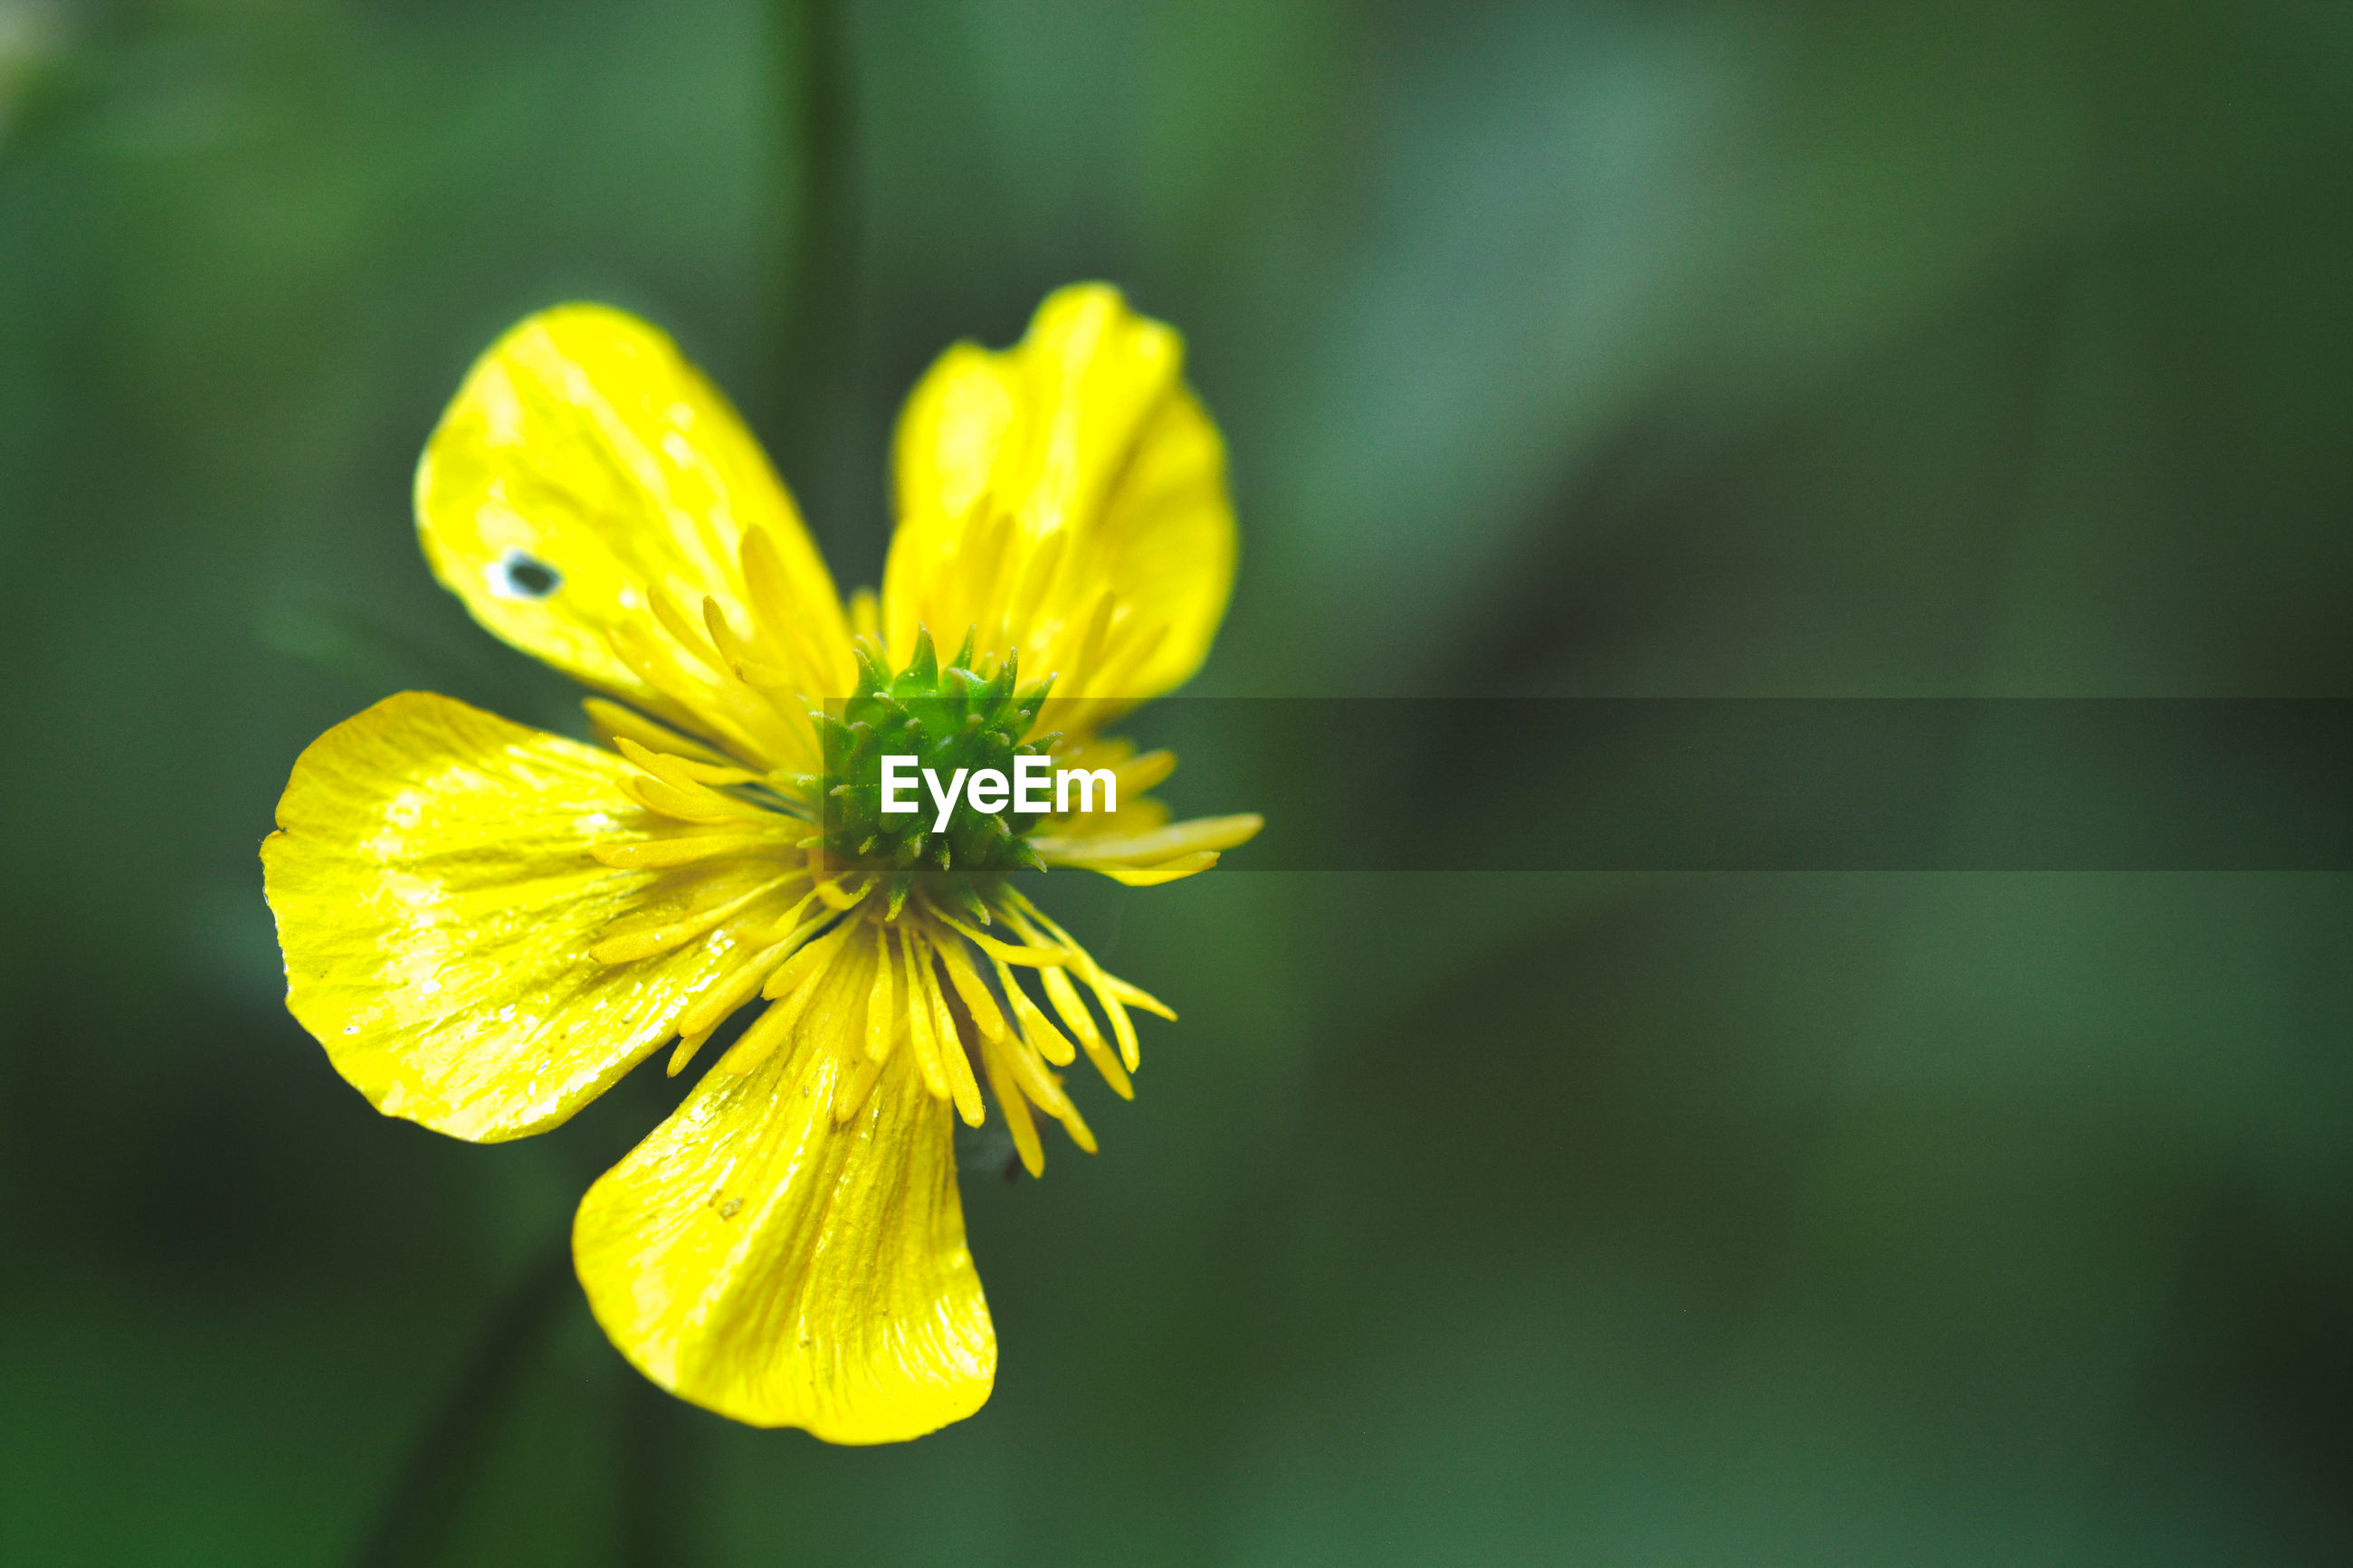 CLOSE-UP OF YELLOW FLOWER ON PLANT